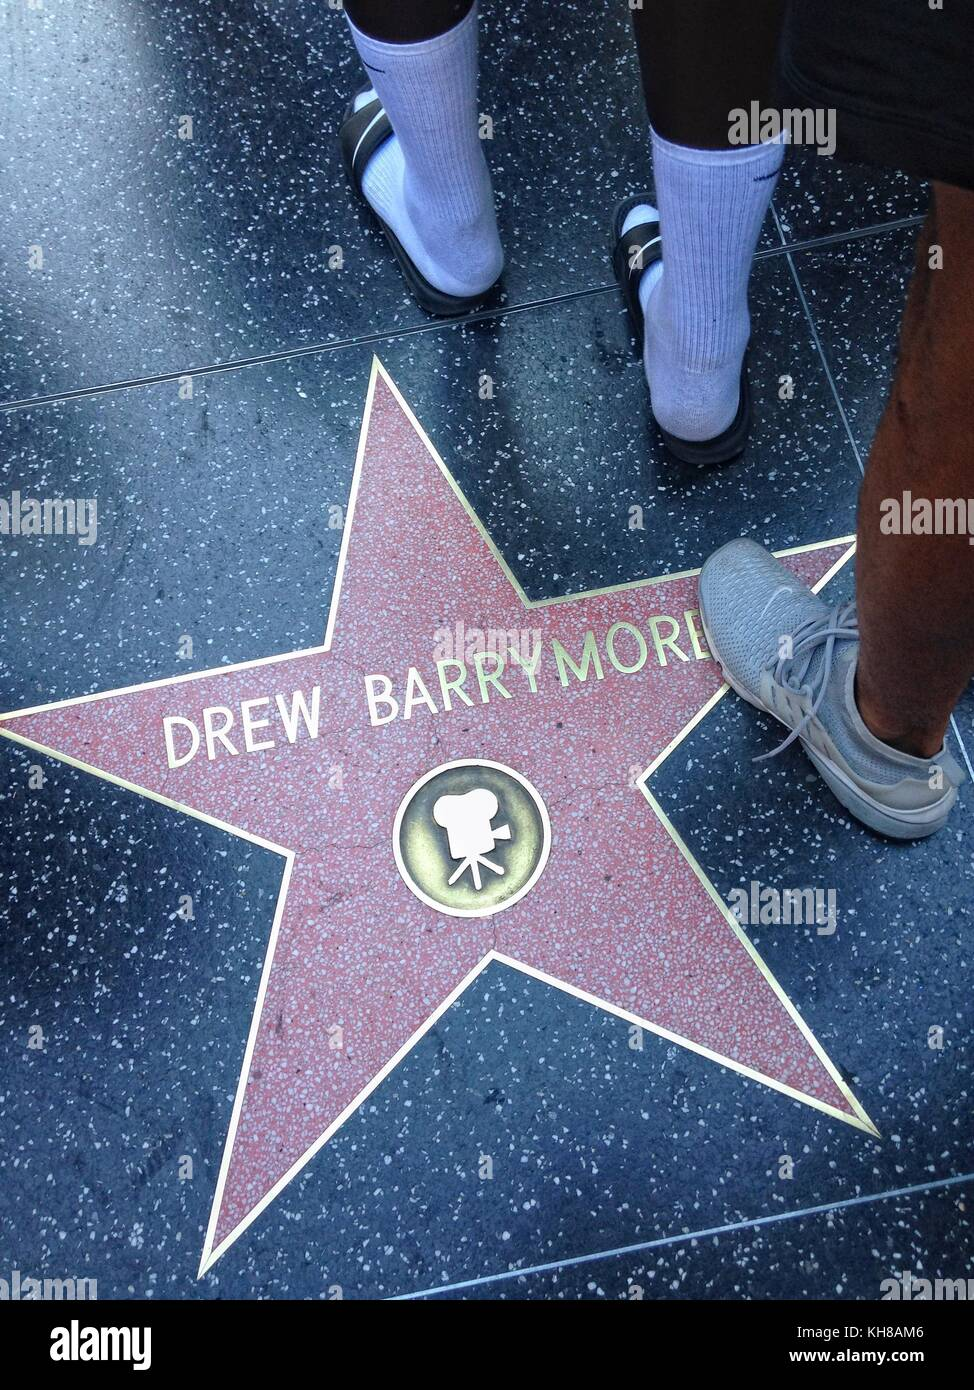 Hollywood, California - July 26 2017: Drew Barrymore Hollywood walk of fame star on July 26, 2017 in Hollywood, - Stock Image